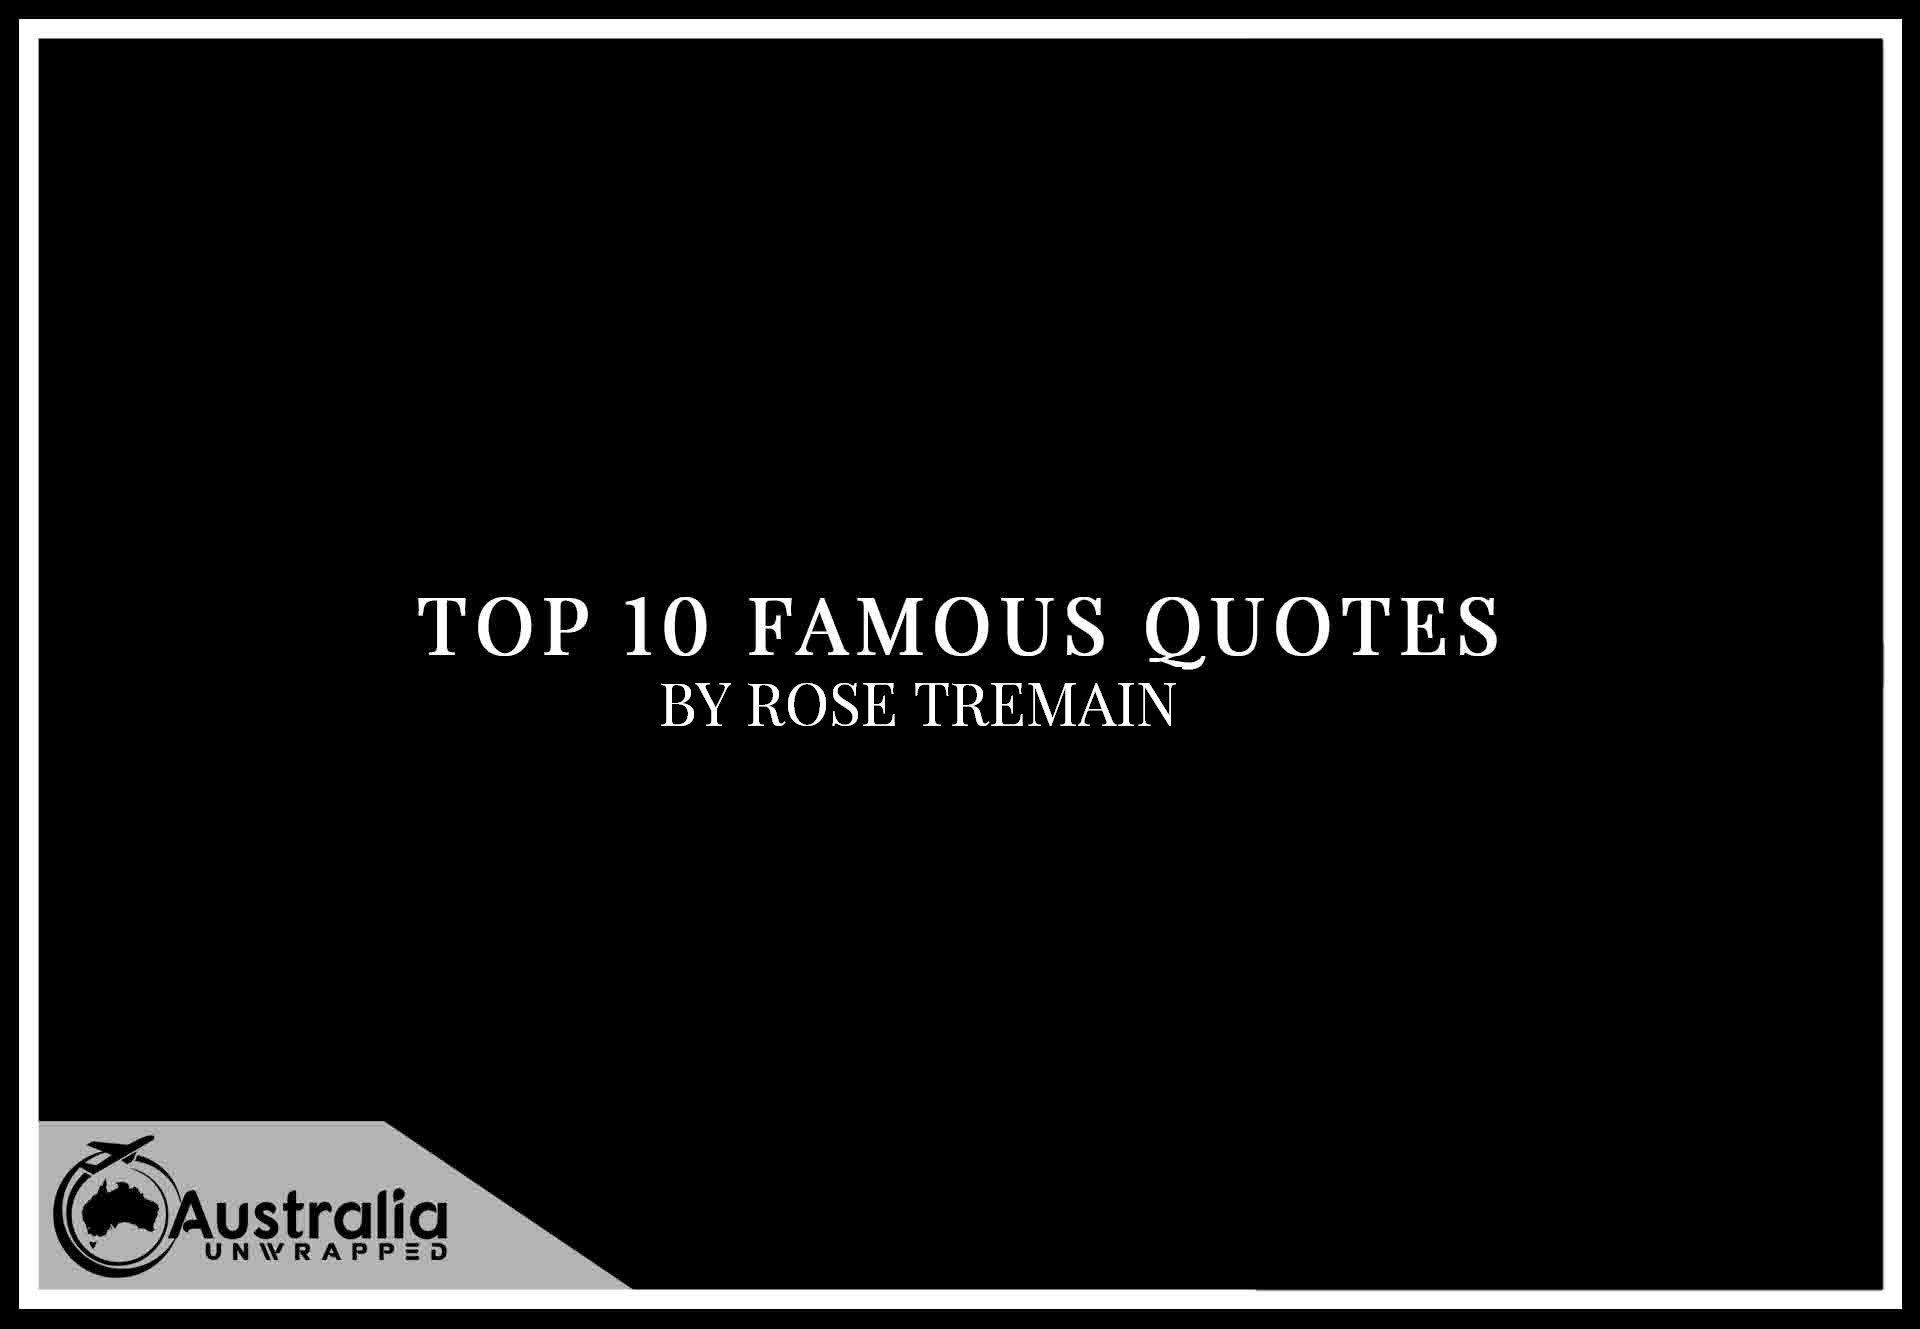 Top 10 Famous Quotes by Author Rose Tremain